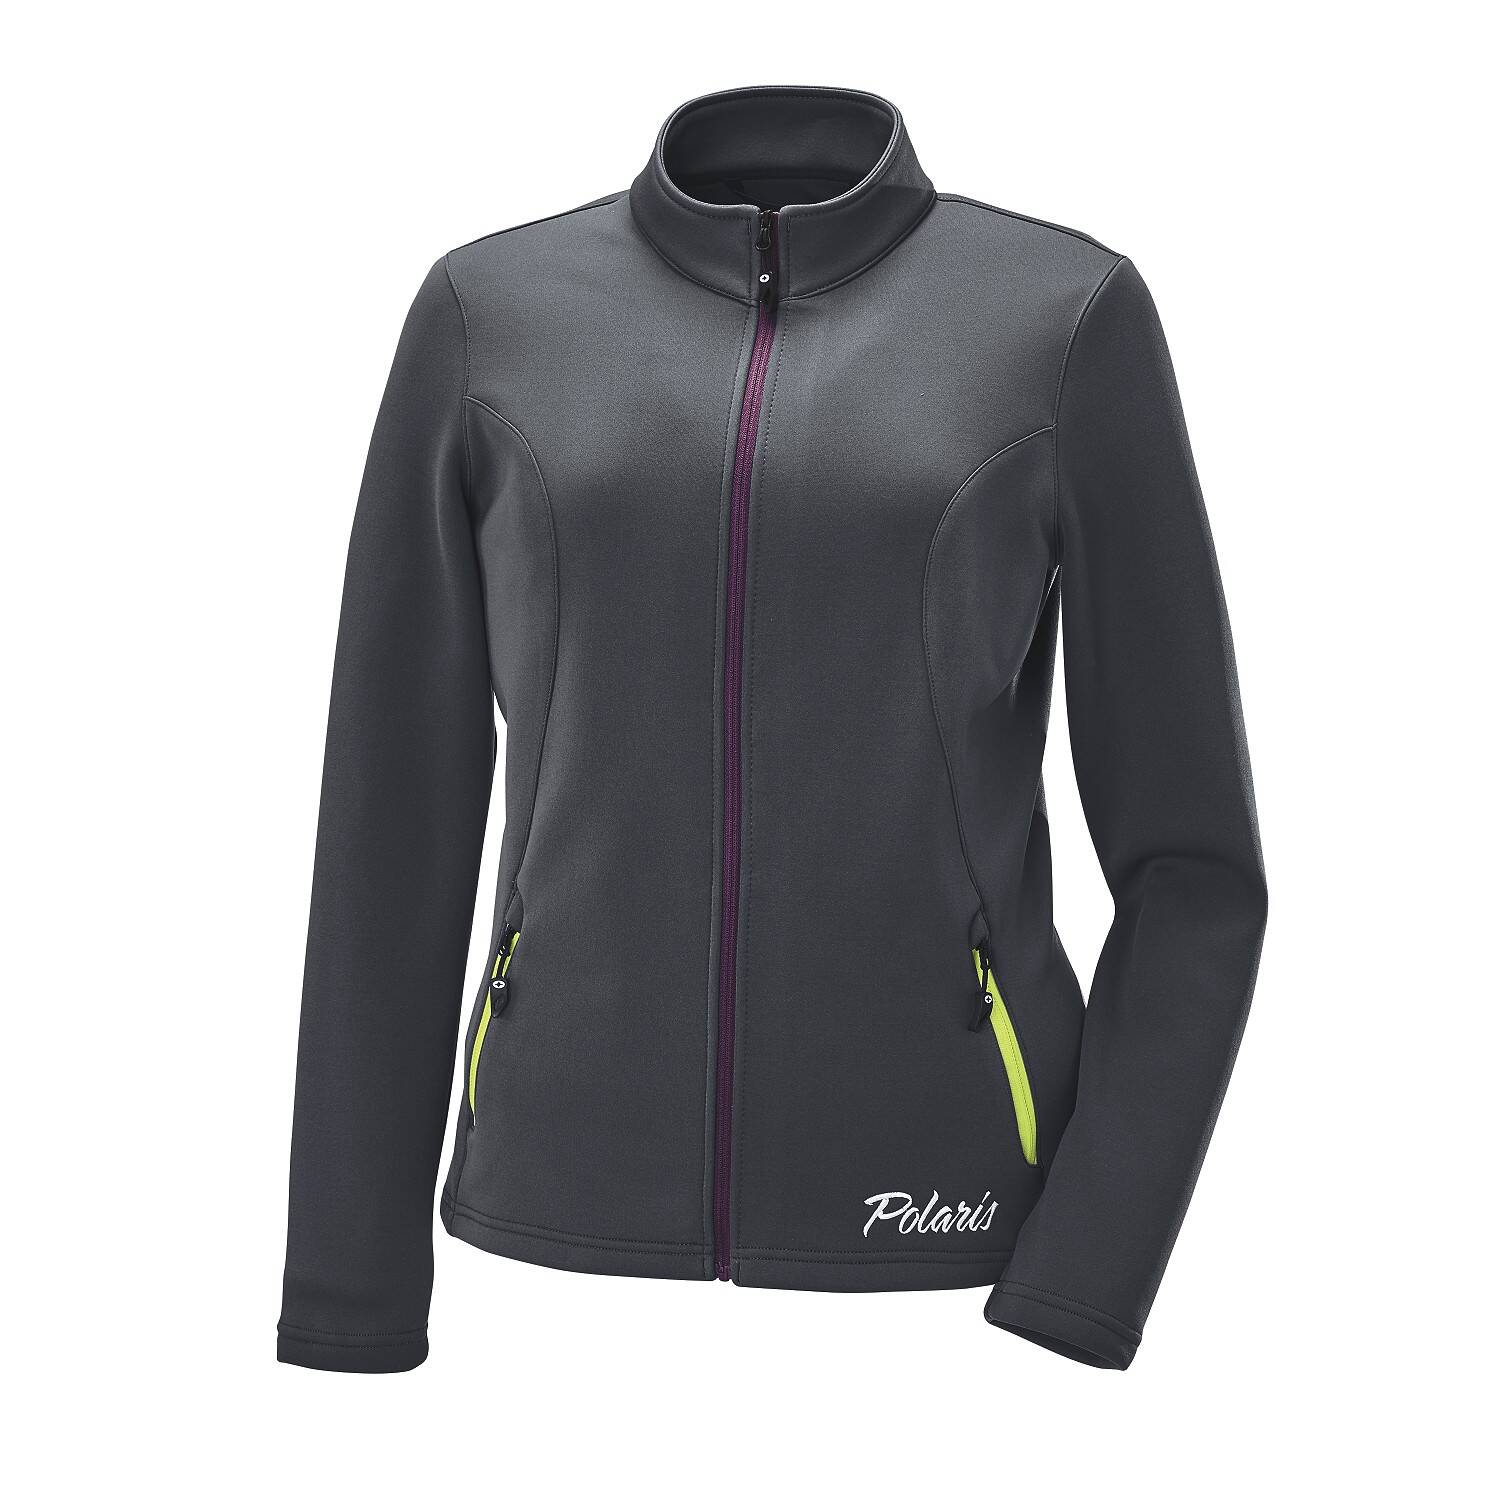 Women's Full-Zip Mid Layer Jacket with White Polaris® Logo, Gray